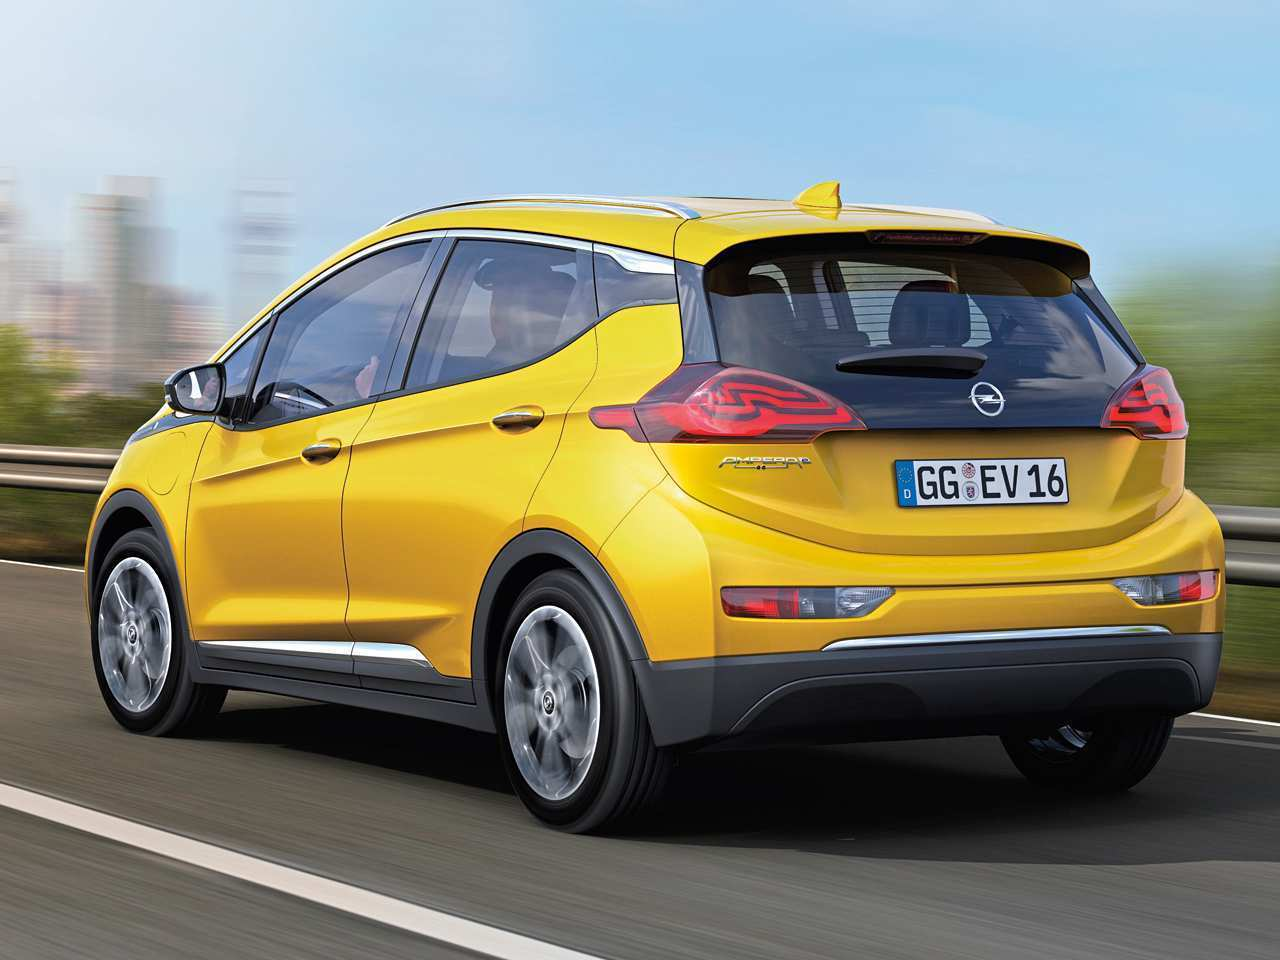 87 New Opel Modelle 2020 Images by Opel Modelle 2020